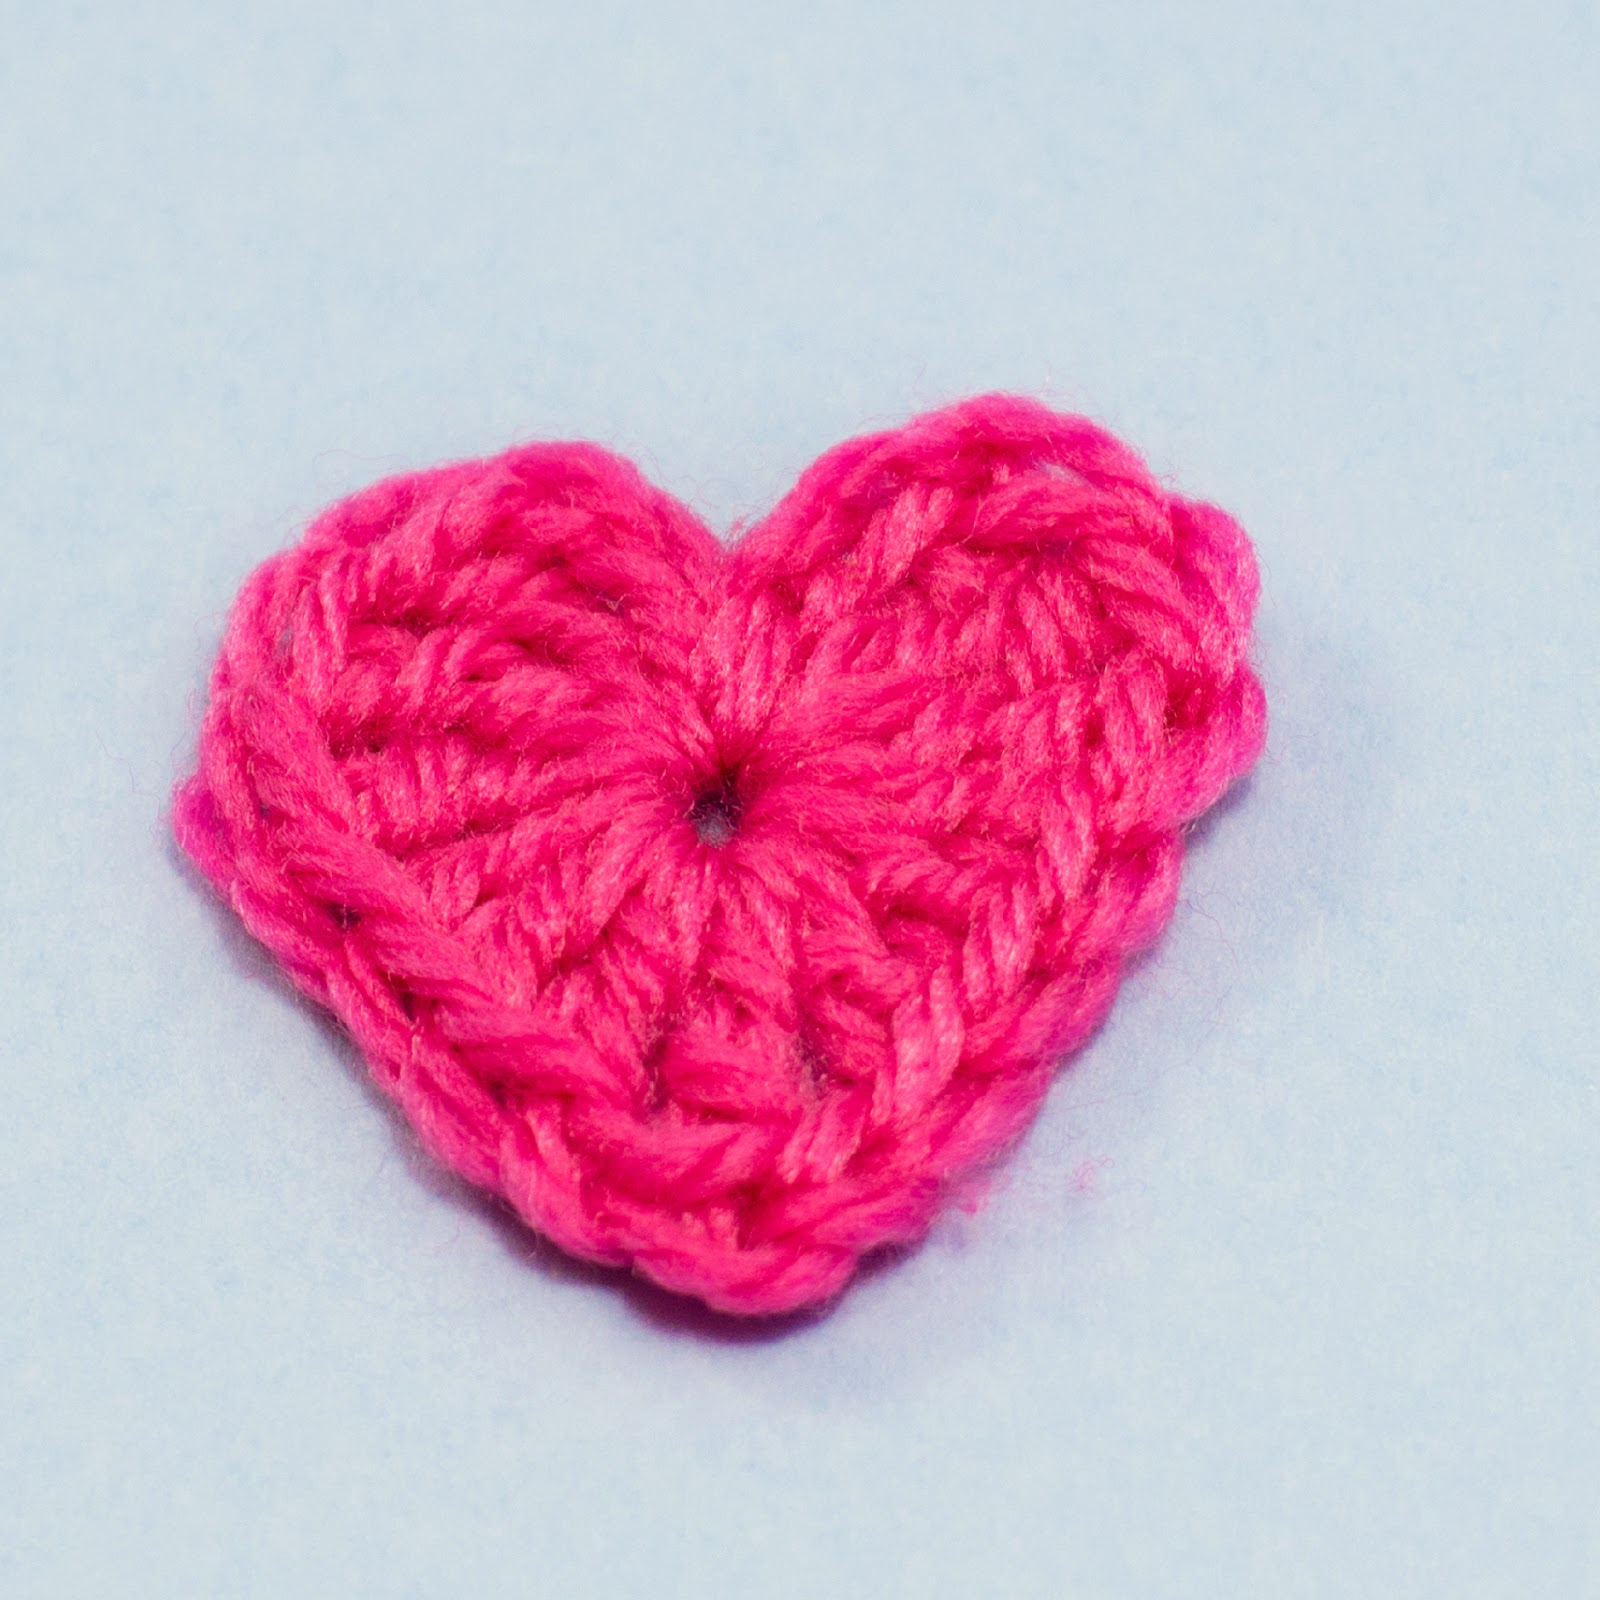 Crochet Patterns Free Red Heart : Free Heart Crochet Pattern New Calendar Template Site